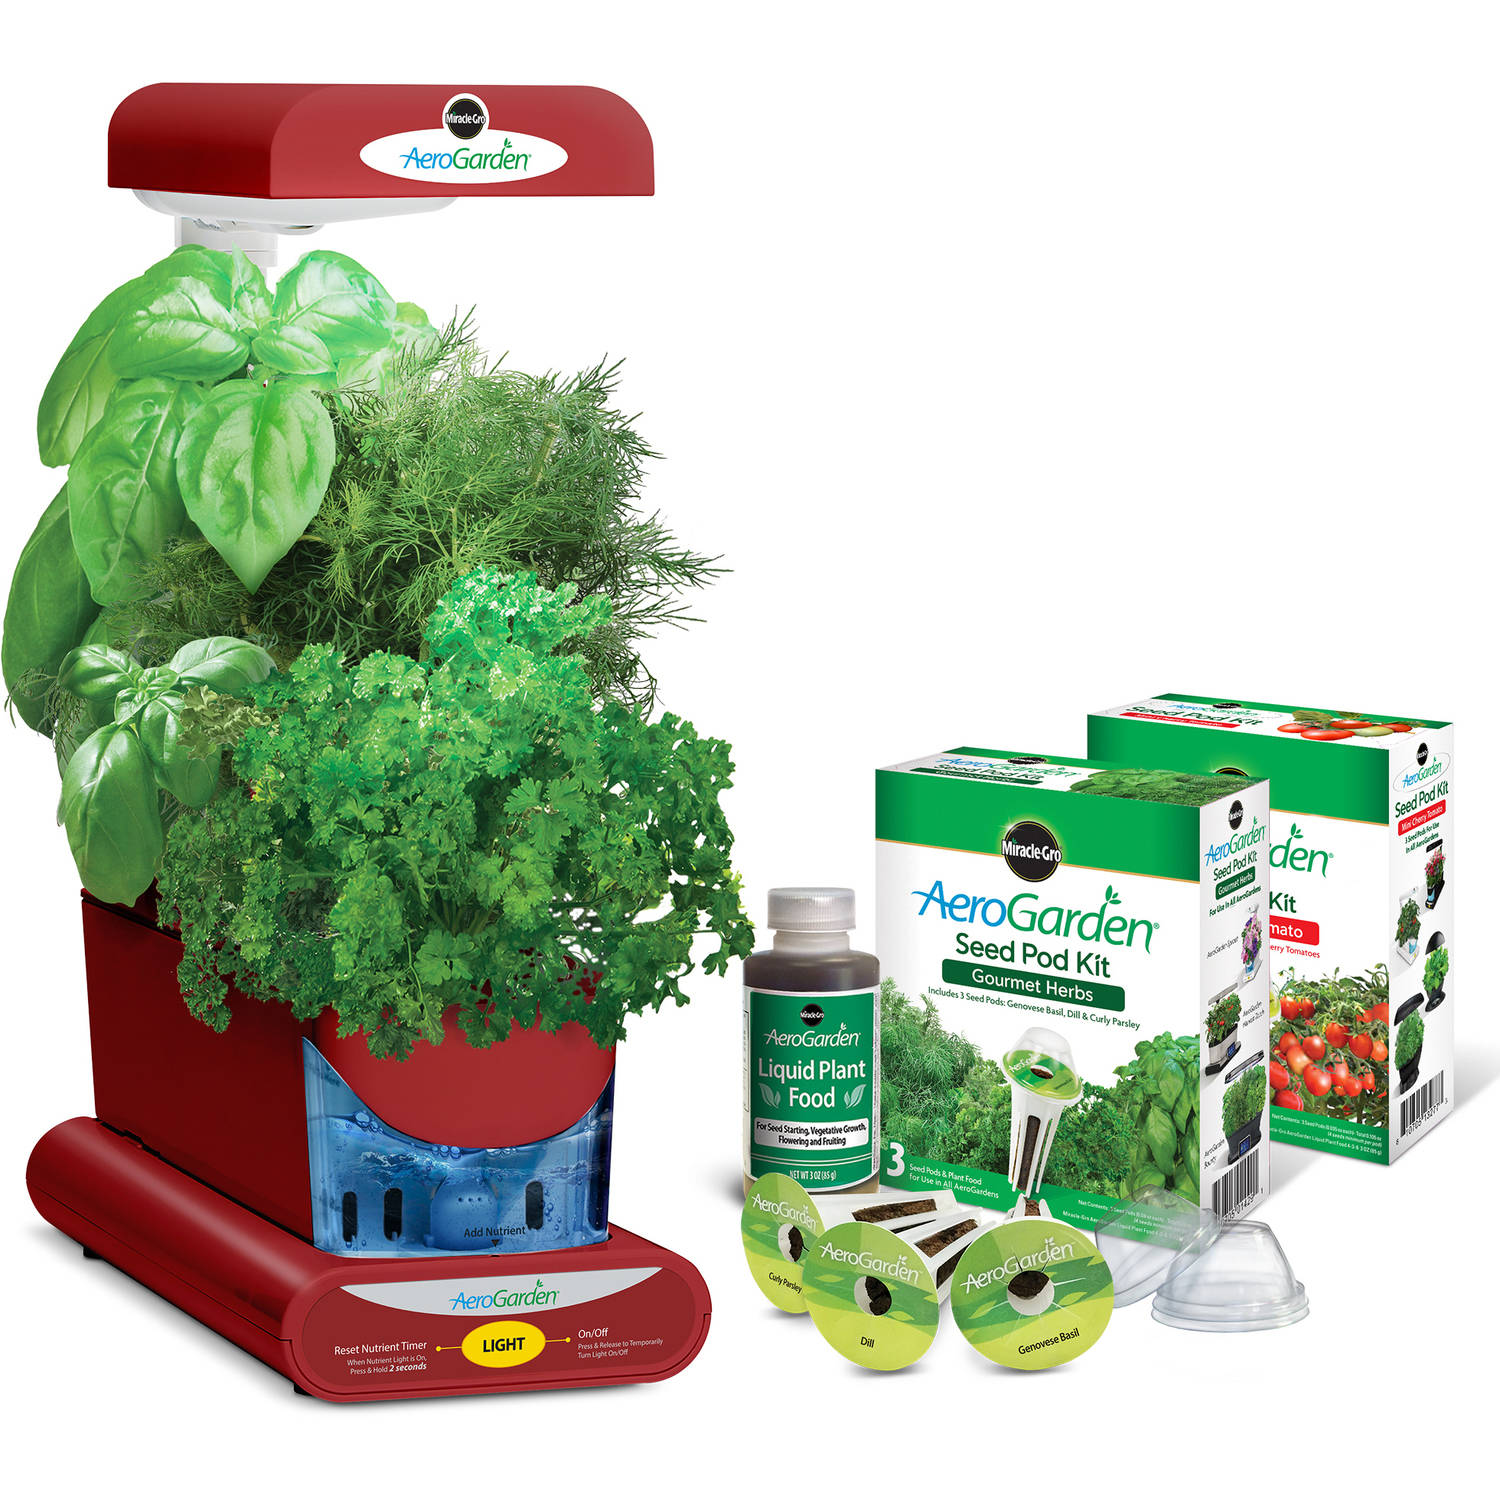 Miracle-Gro AeroGarden Sprout Red with Gourmet Herbs Seed Pod Kit and Bonus Mighty Mini Cherry Tomato Seed Pod Kit